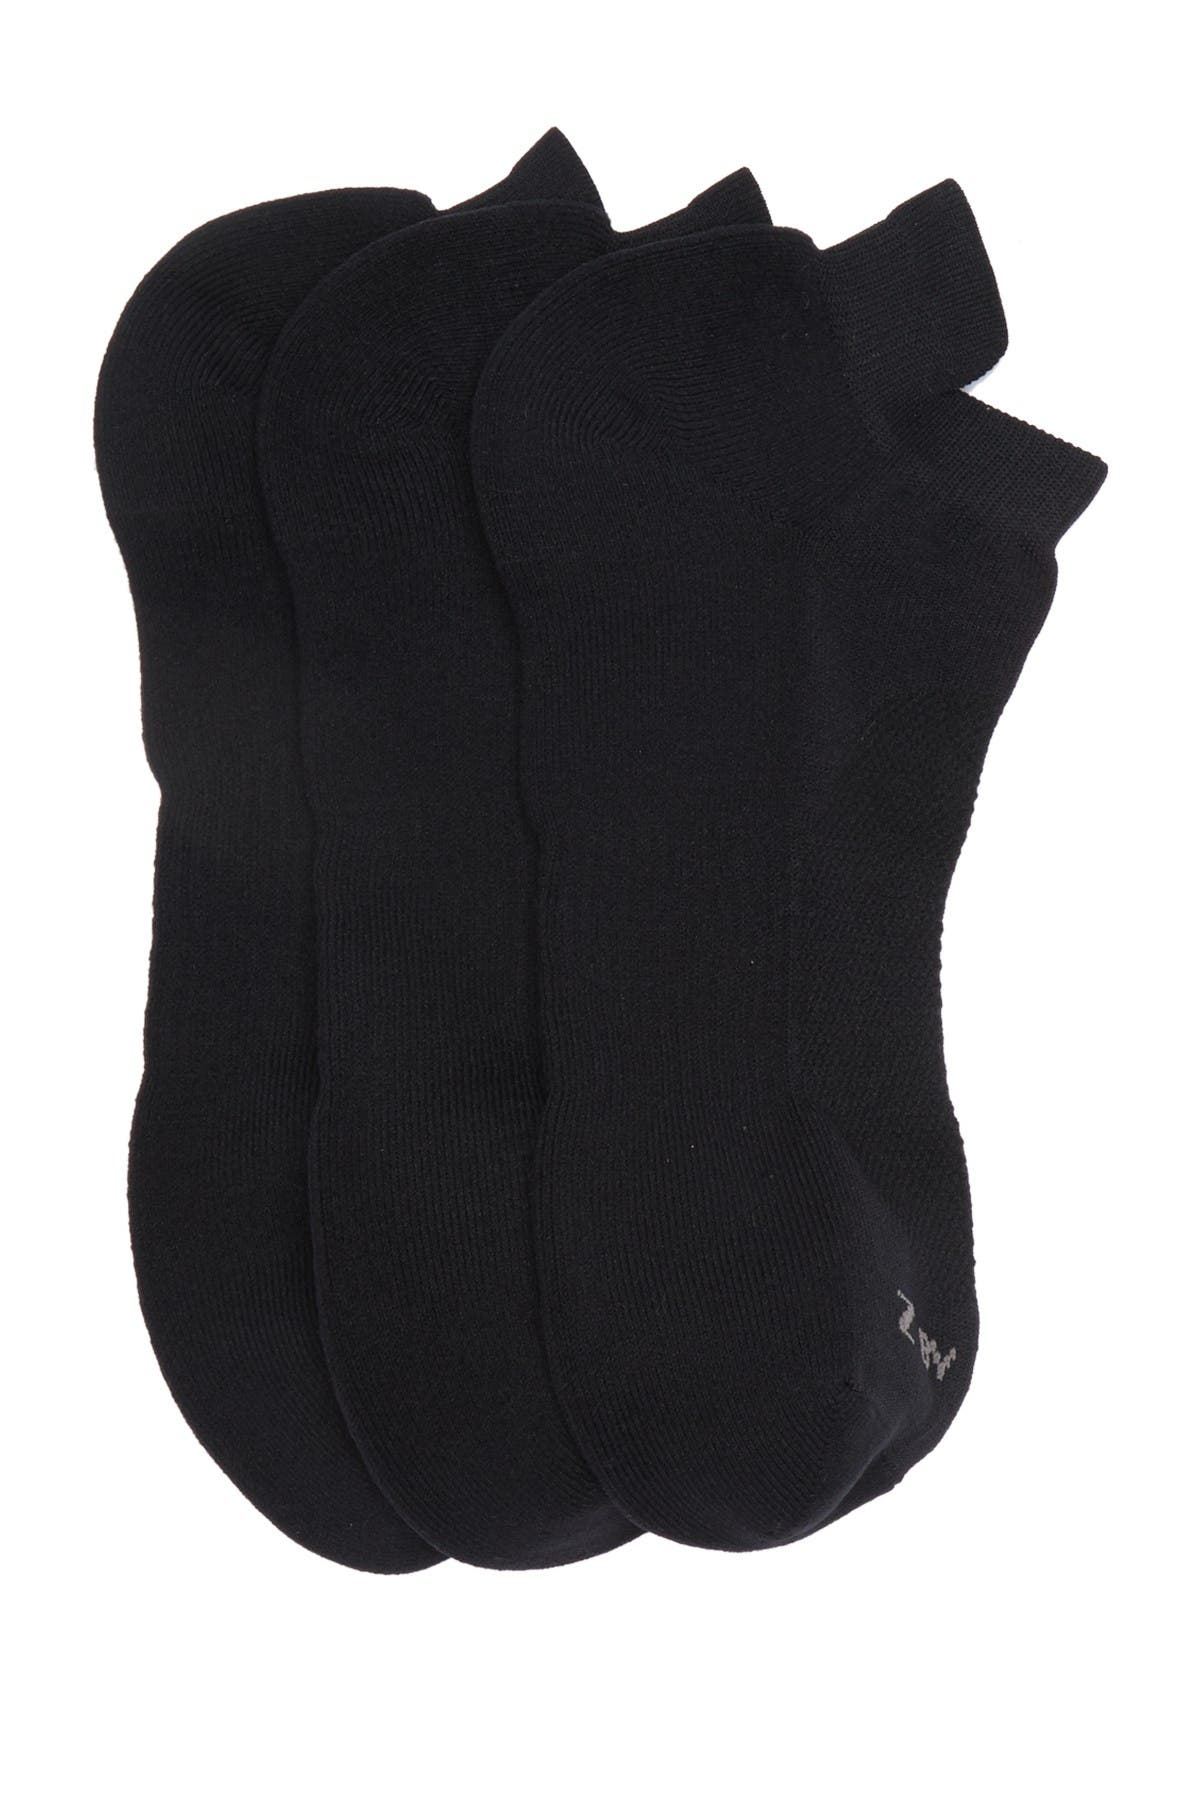 Image of Z By Zella Performance Tab Back Ankle Socks - Pack of 3